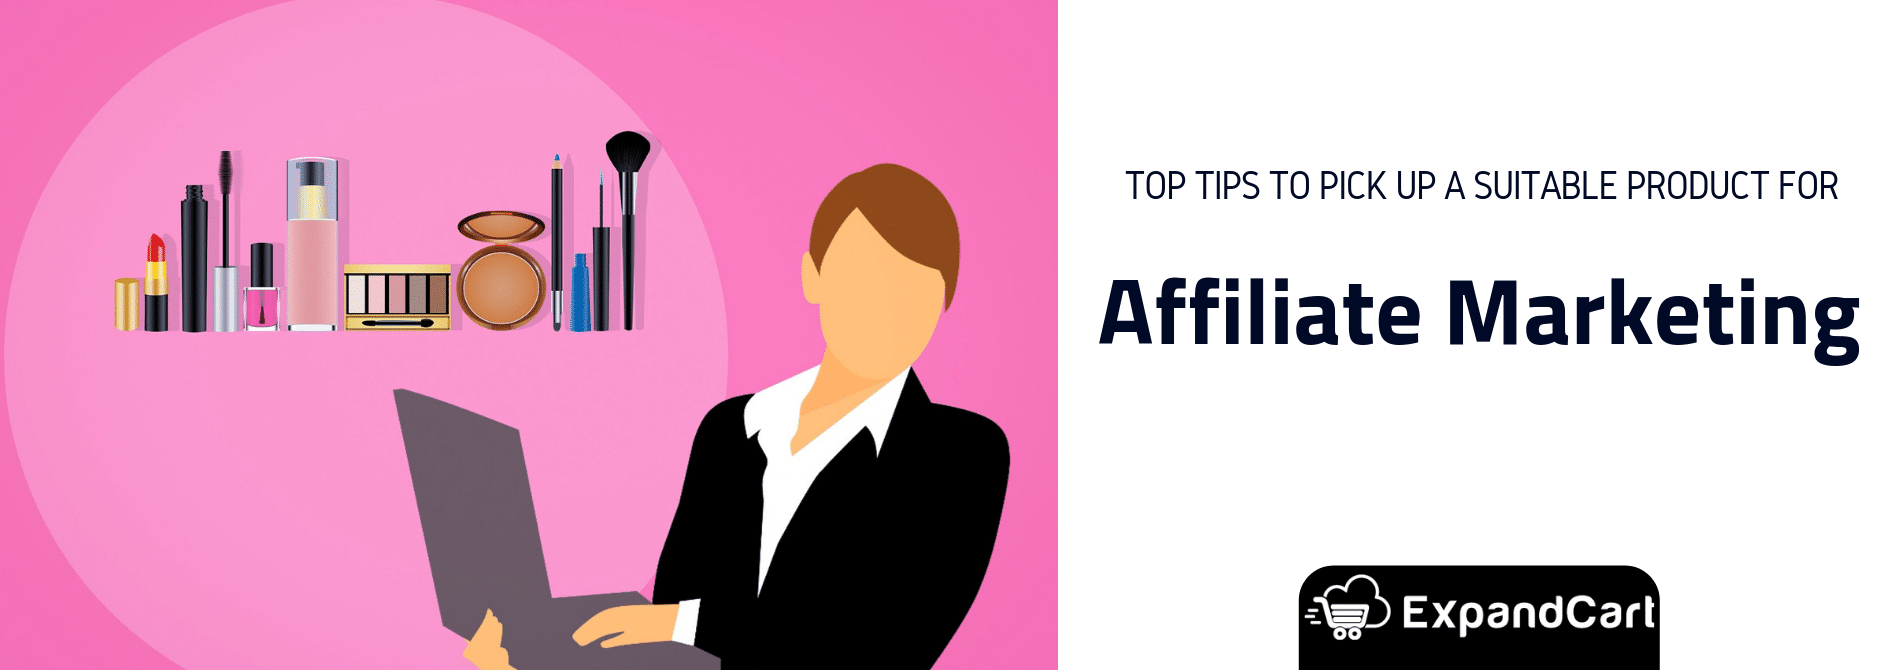 Top 6 Tips To Pick up A Suitable Product for Affiliate Marketing